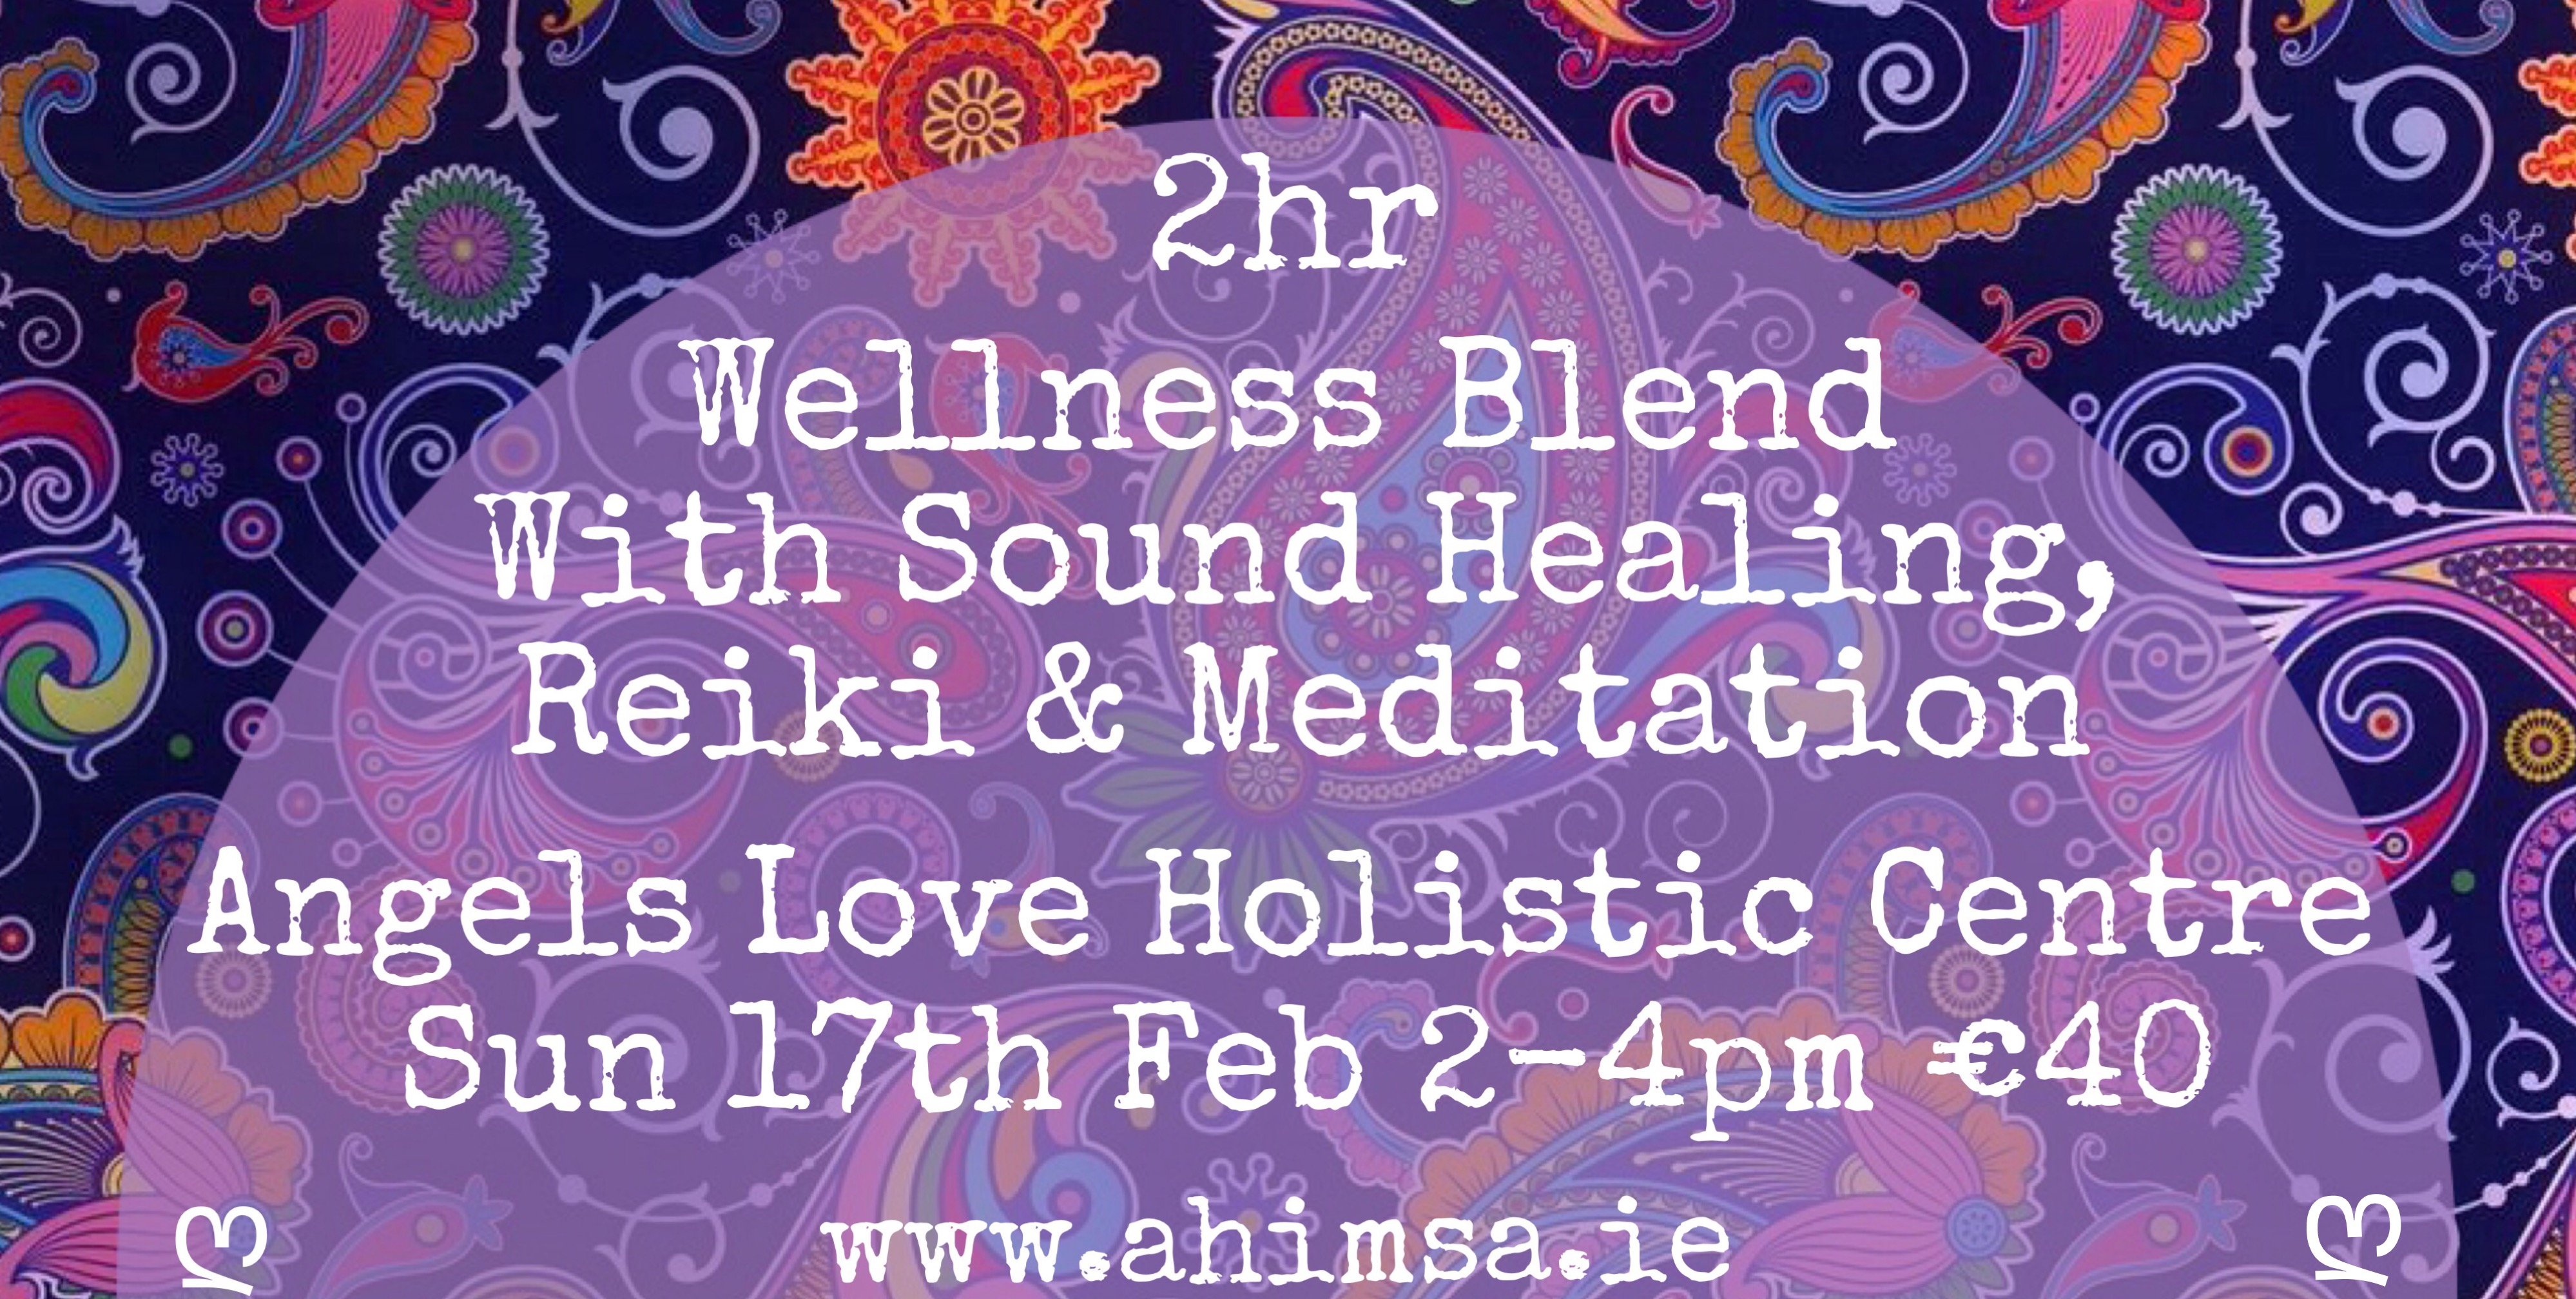 2hr Soul Session With Sound Healing, Reiki and Meditation